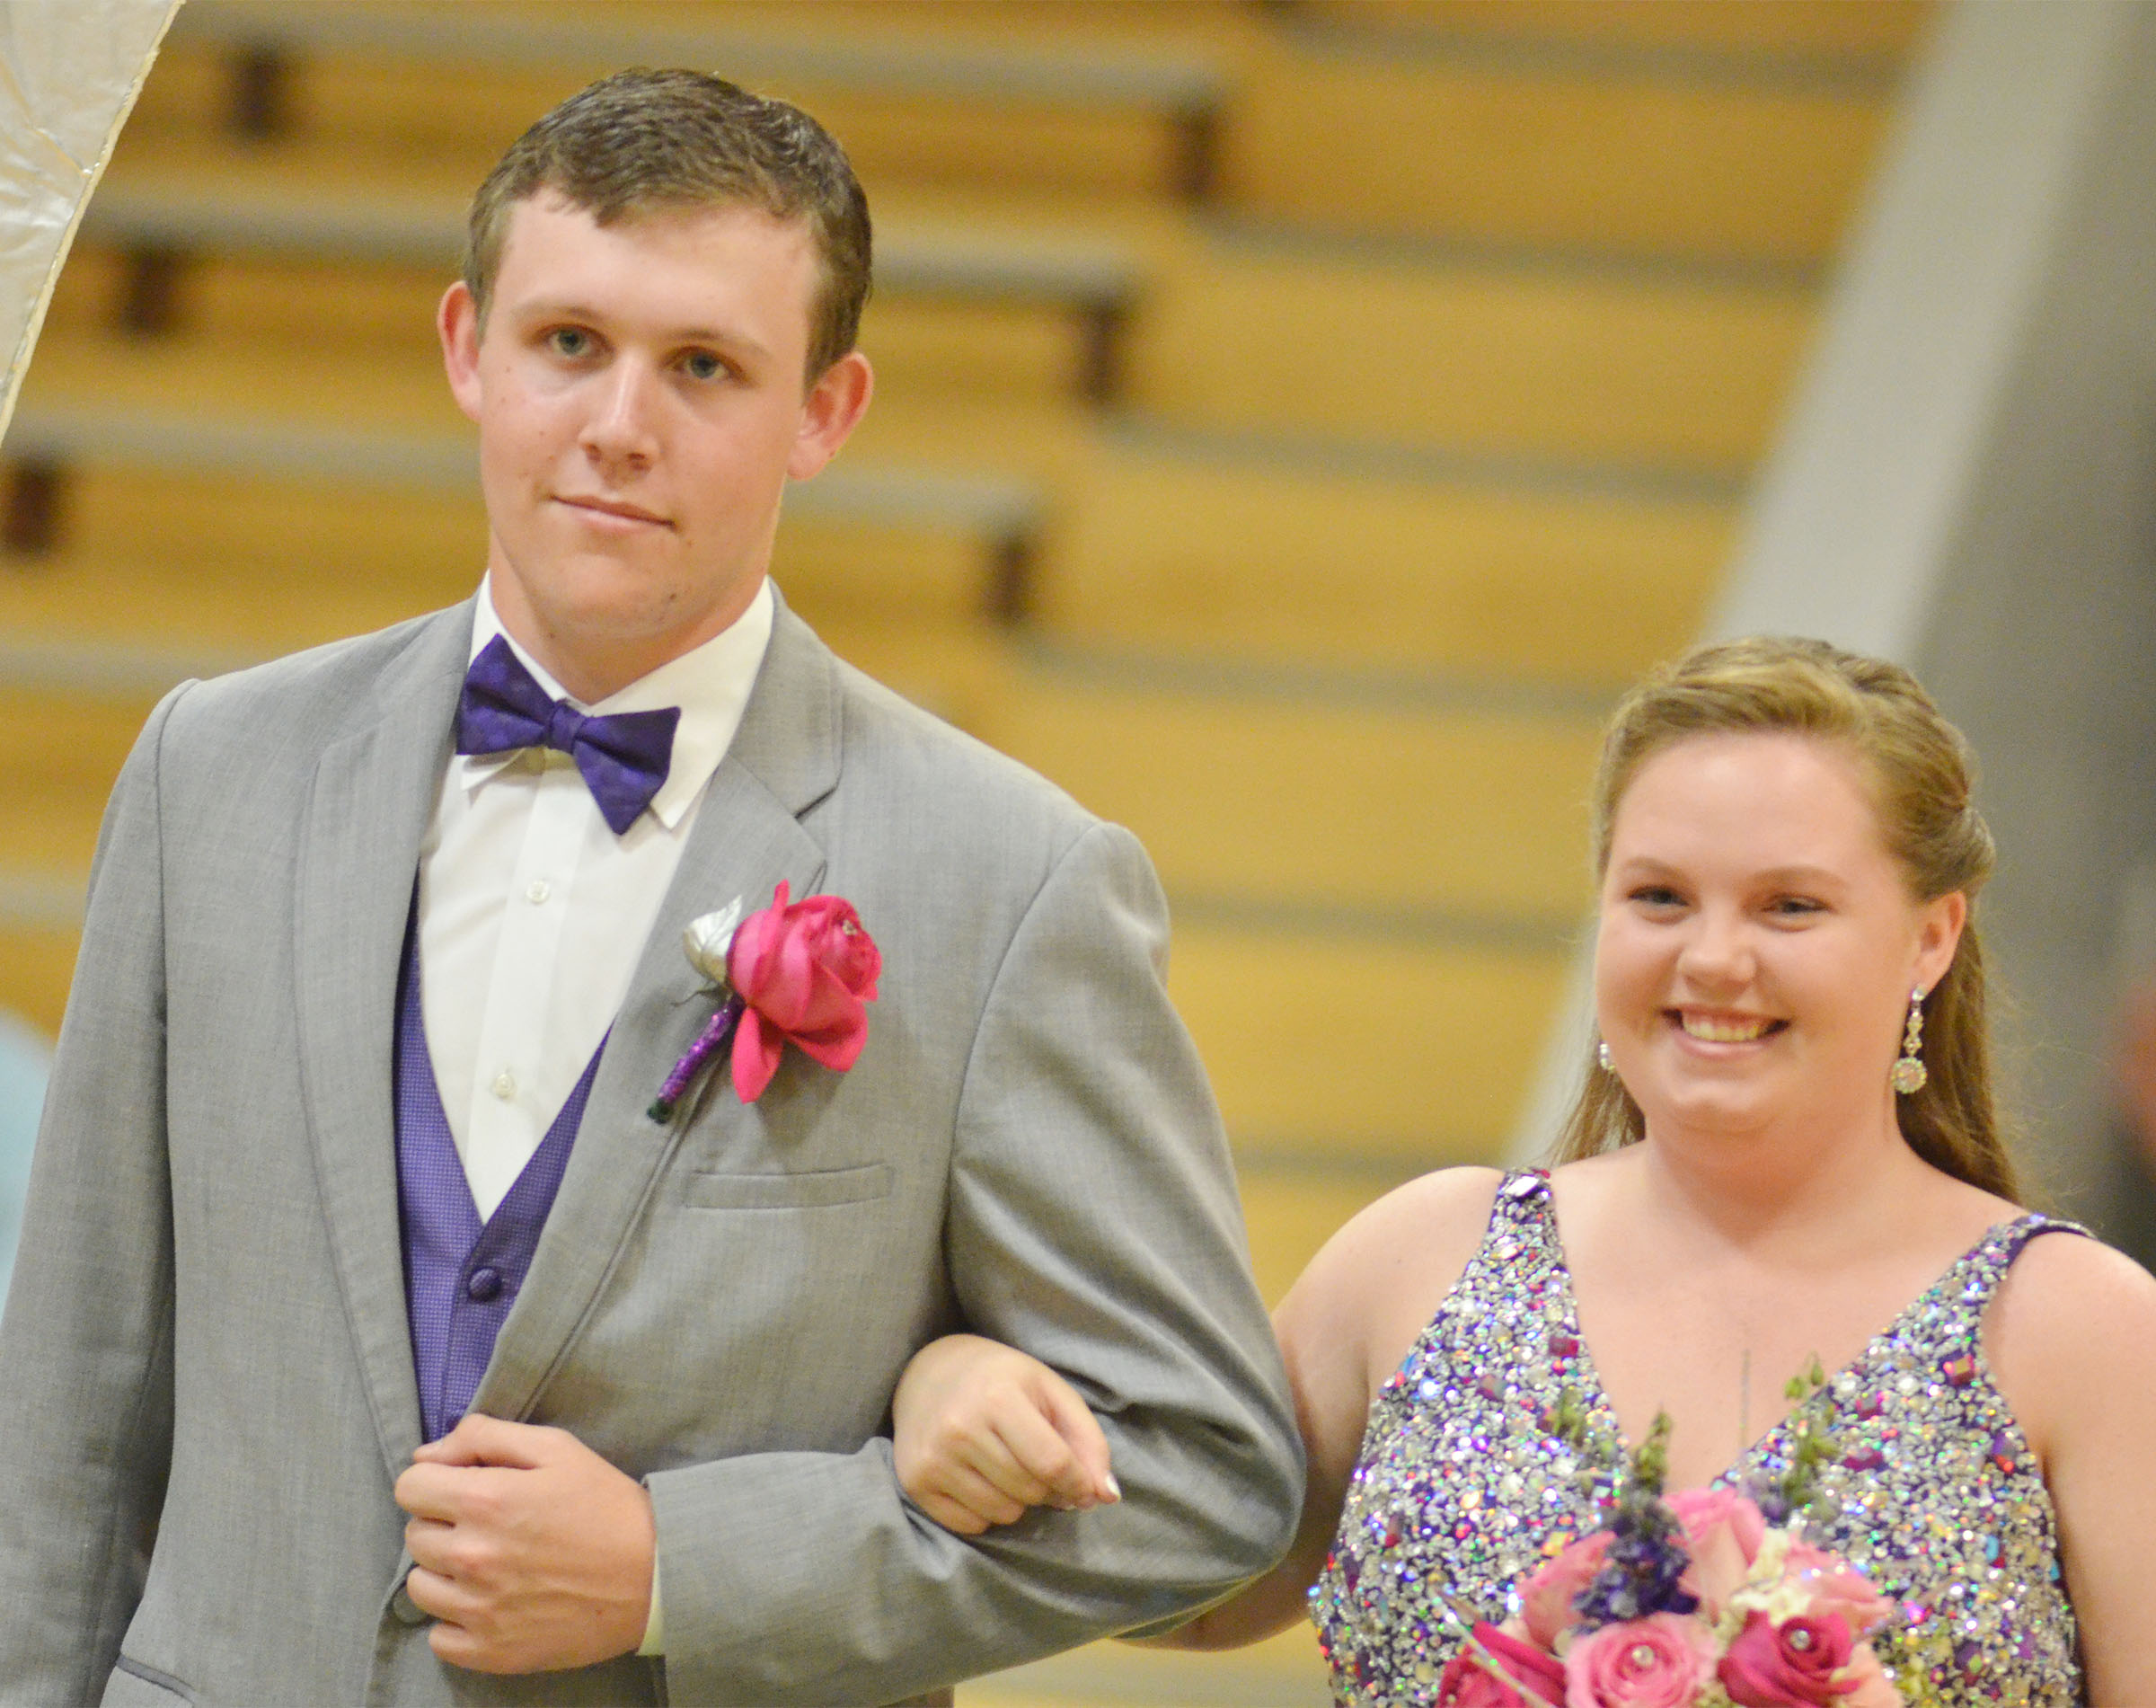 CHS seniors Jared Brewster and Madison Lewis smile at prom walk.